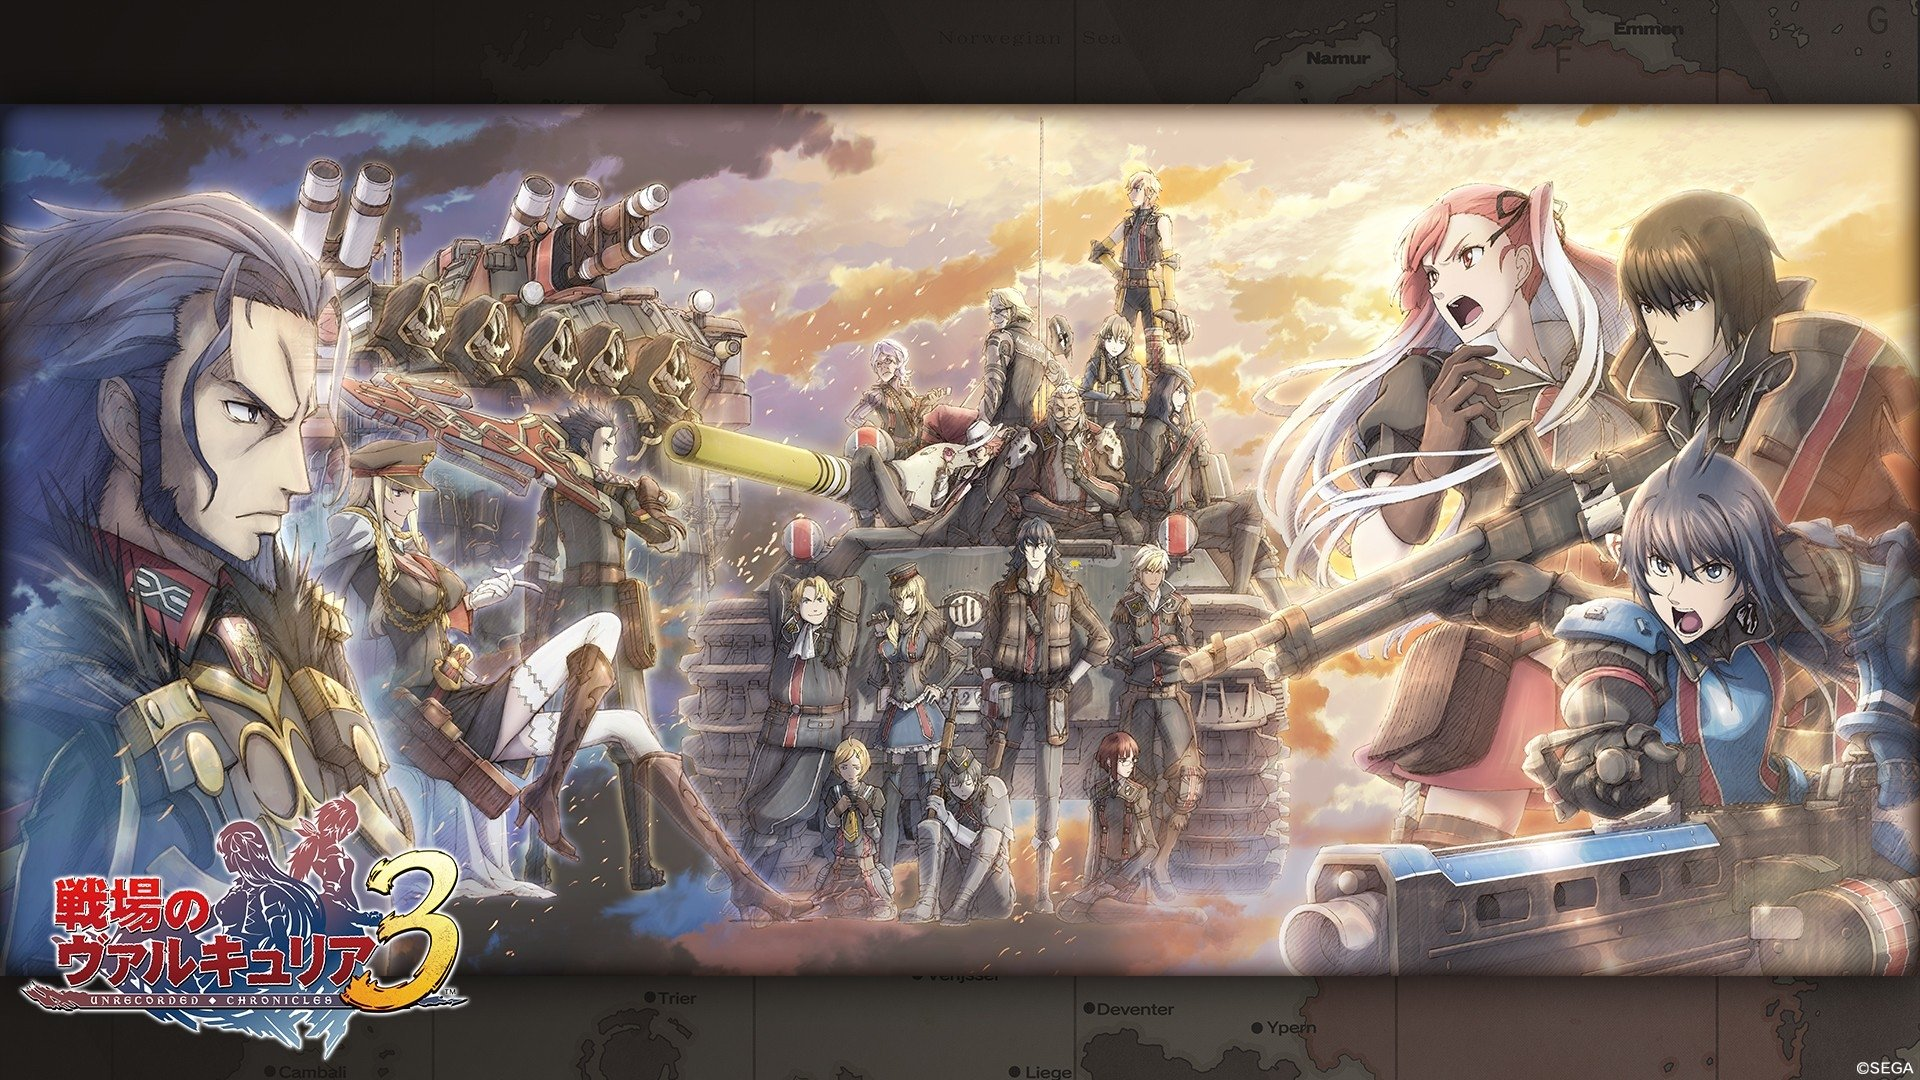 Iphone 7 Plus Hd Wallpapers Reddit Valkyria Chronicles Hd Wallpaper Background Image